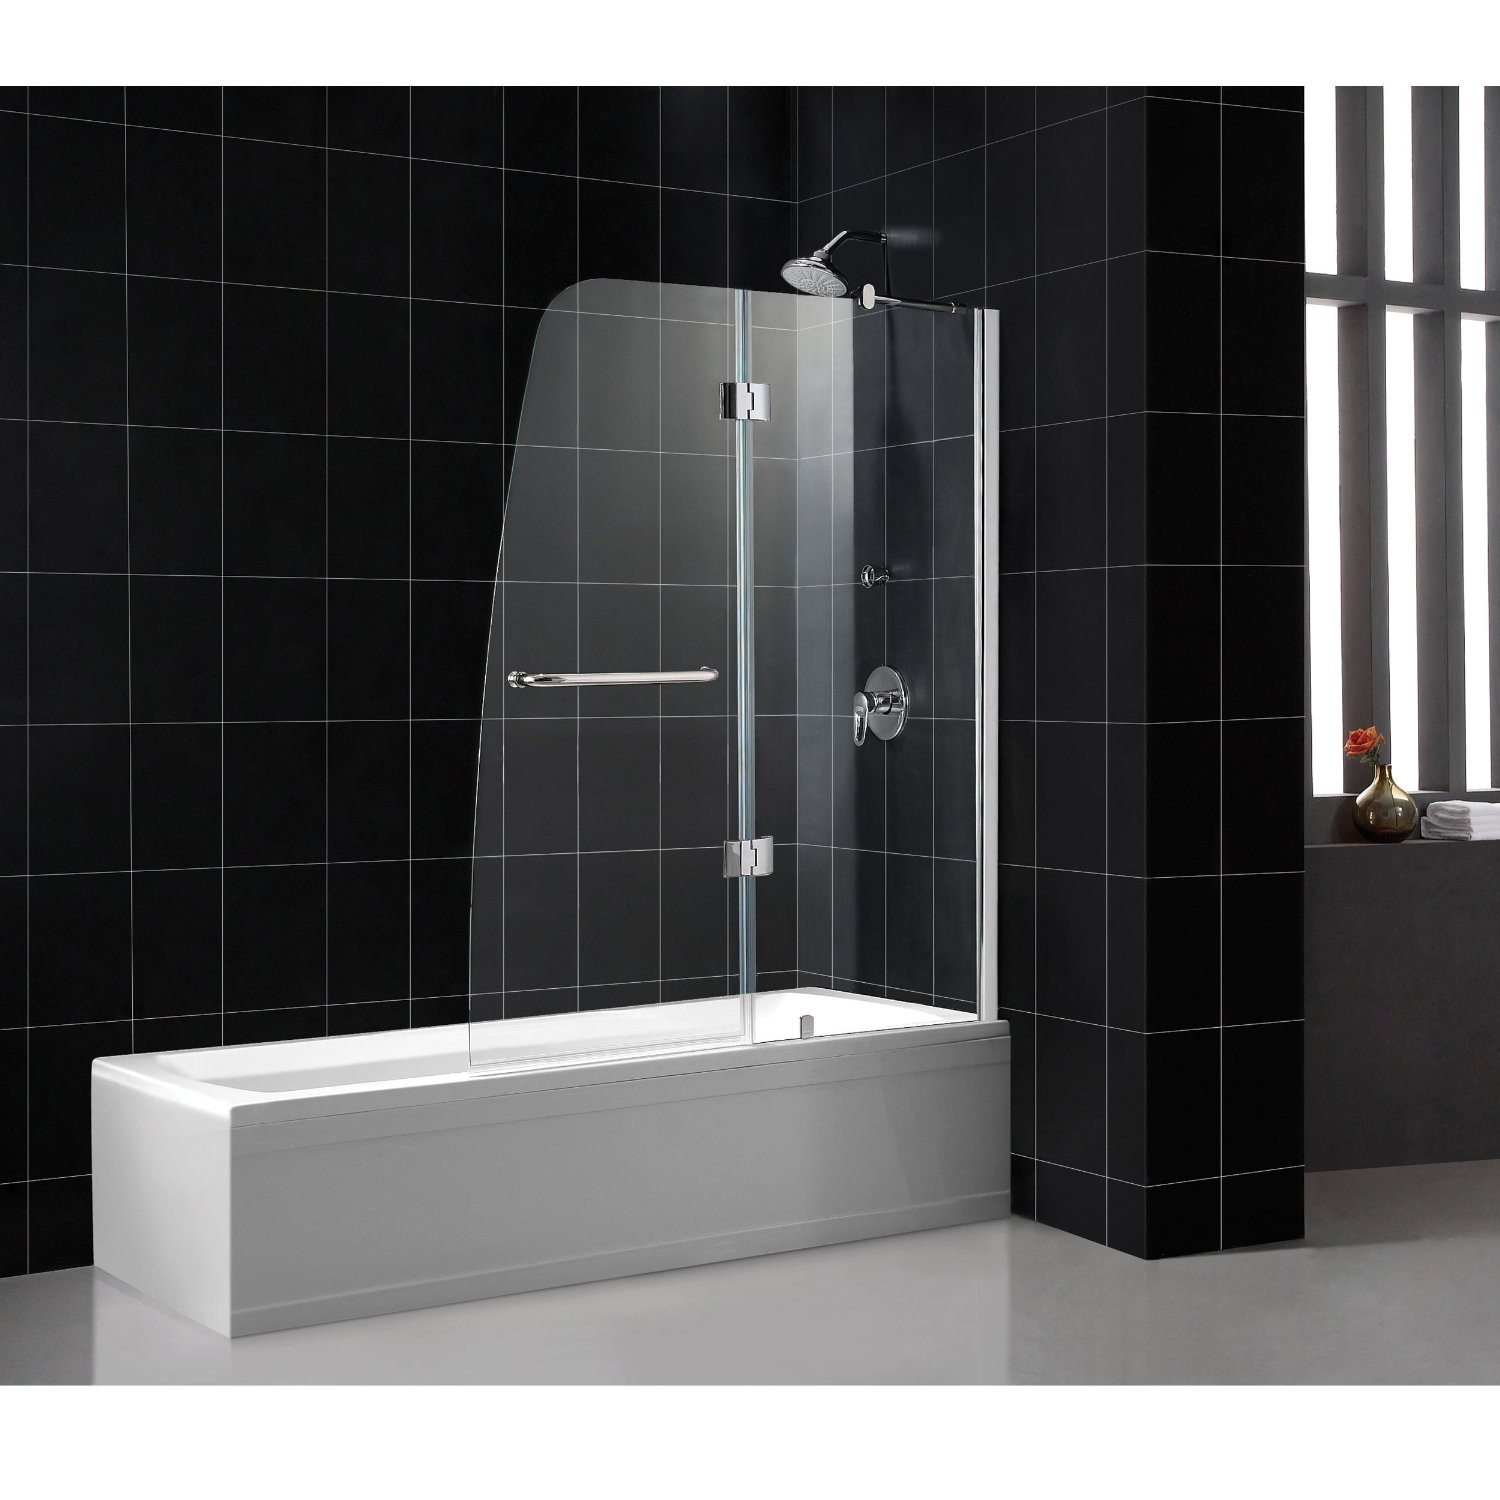 Dreamline shdr 3148586 01 aqua tub door 48 x 58 clear glass chrome dreamline shdr 3148586 01 bathtub shower door 48 x 58 aqua clear hinged glass chrome planetlyrics Image collections